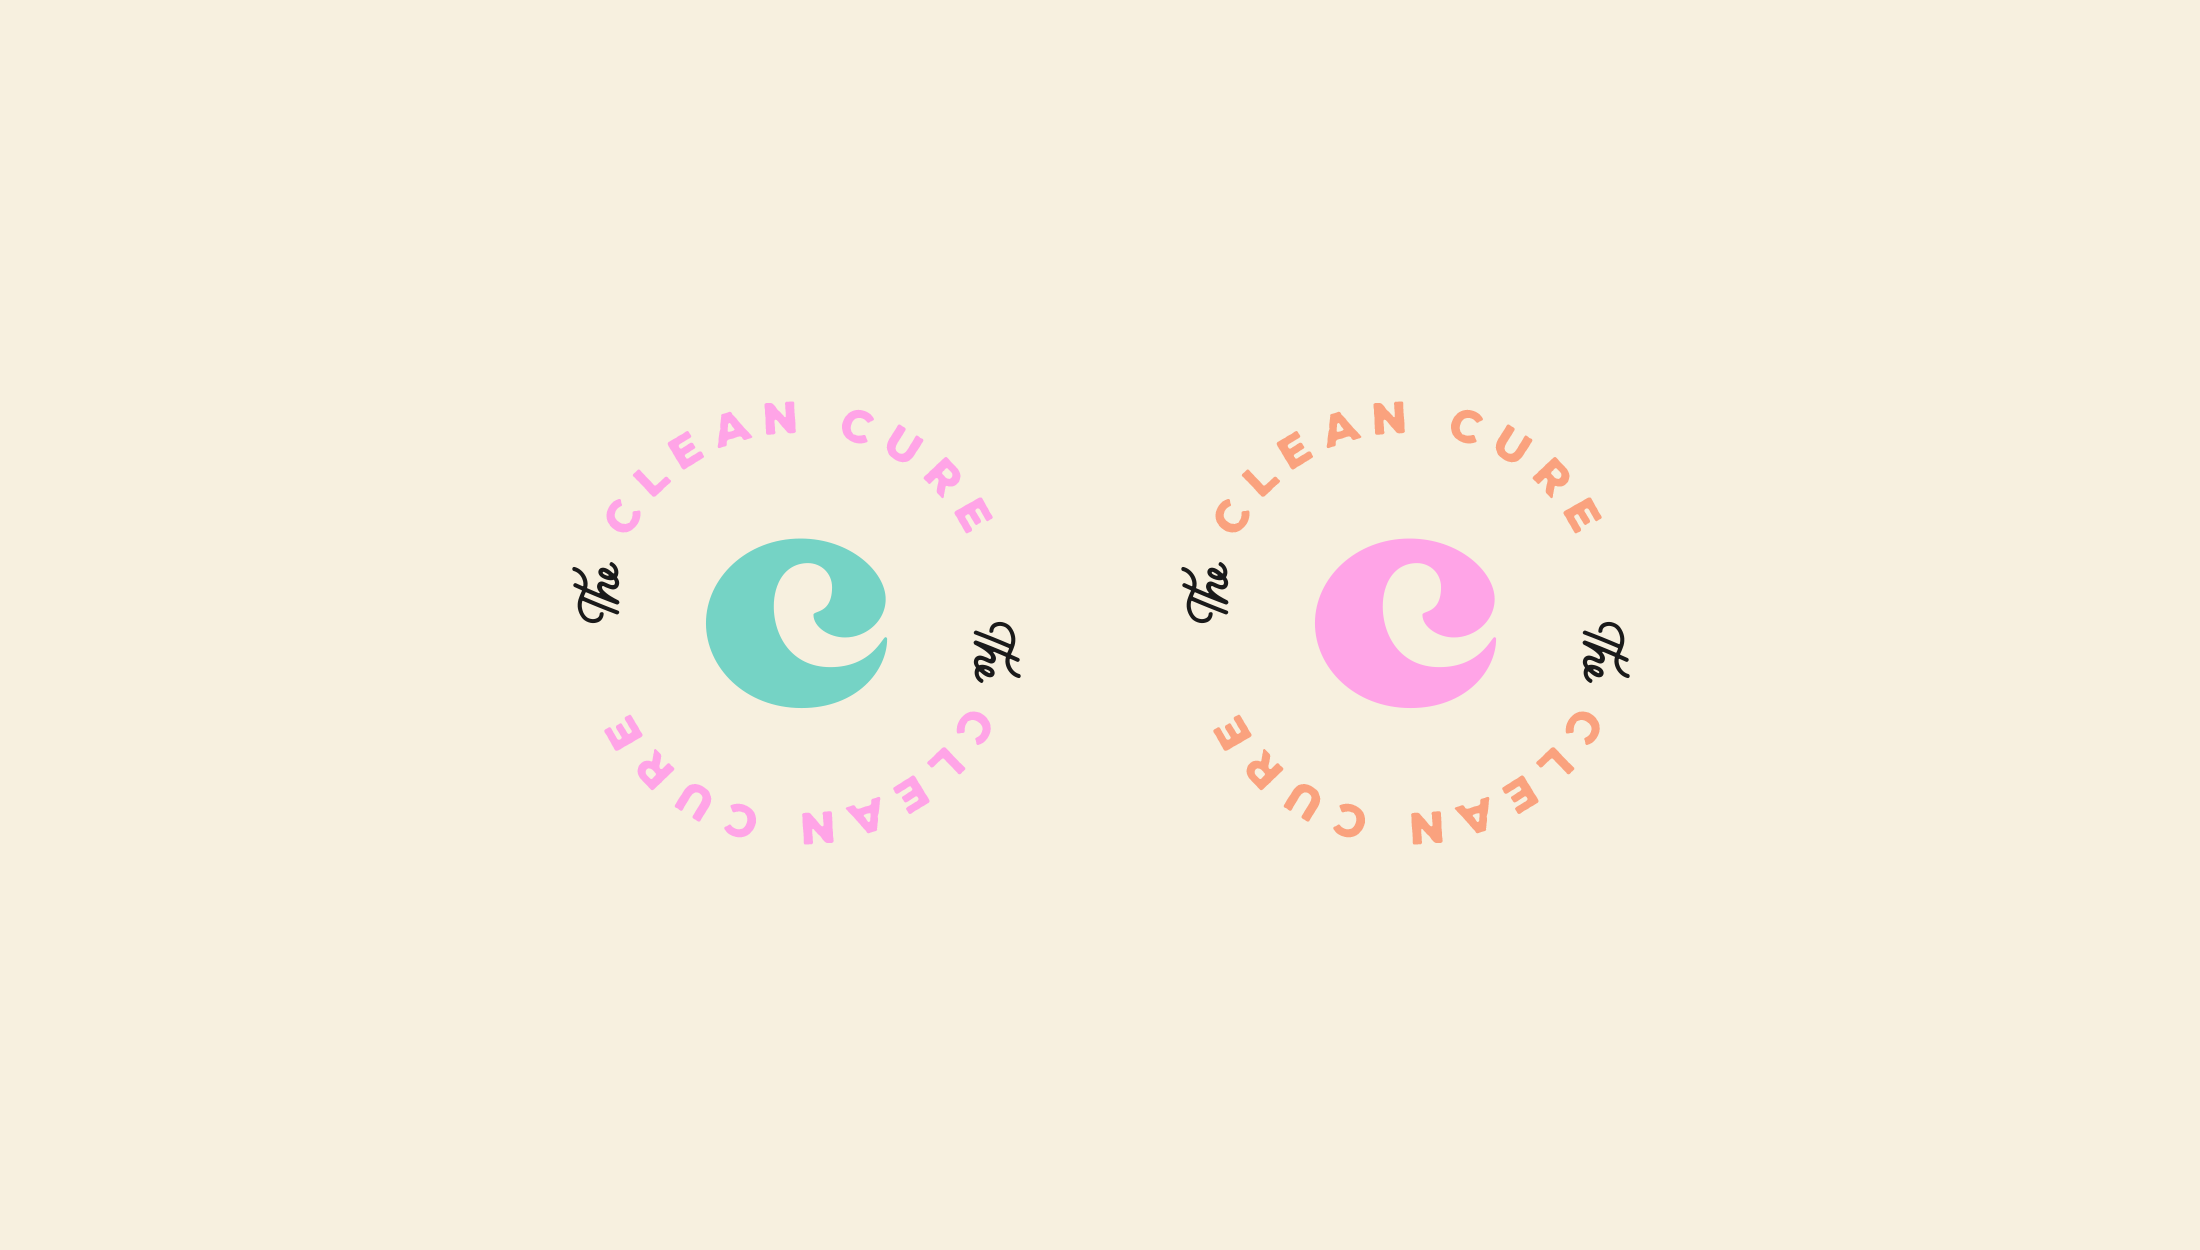 Logomark design for The Clean Cure, helping you get organised by delving to the root of the problem - designed by Wiltshire-based graphic designer, Kaye Huett